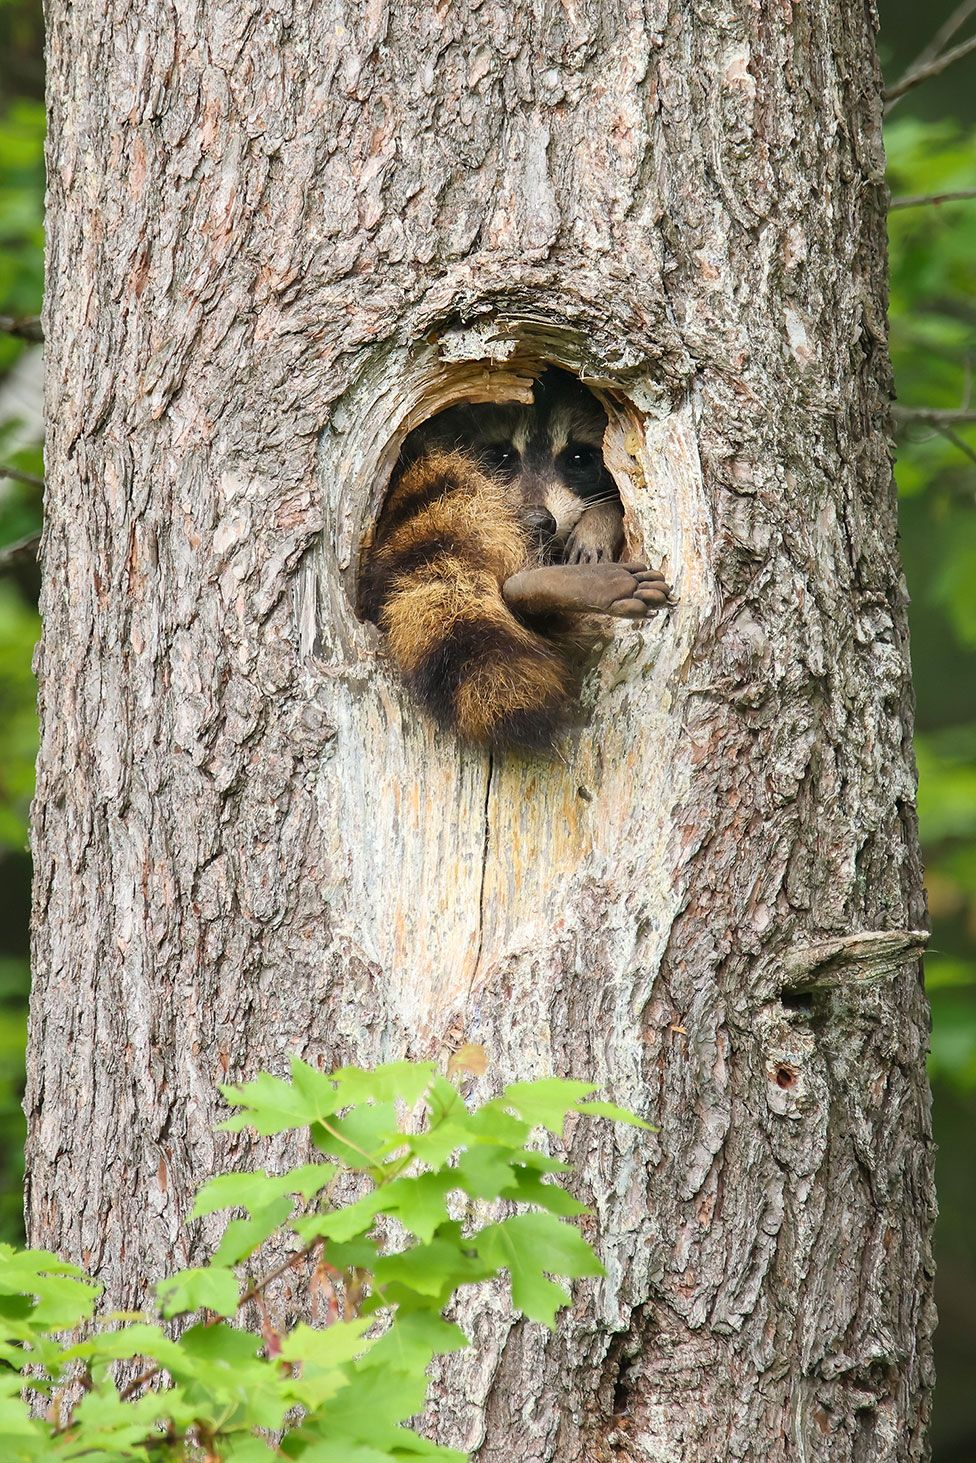 A raccoon with one foot sticking out of a tree